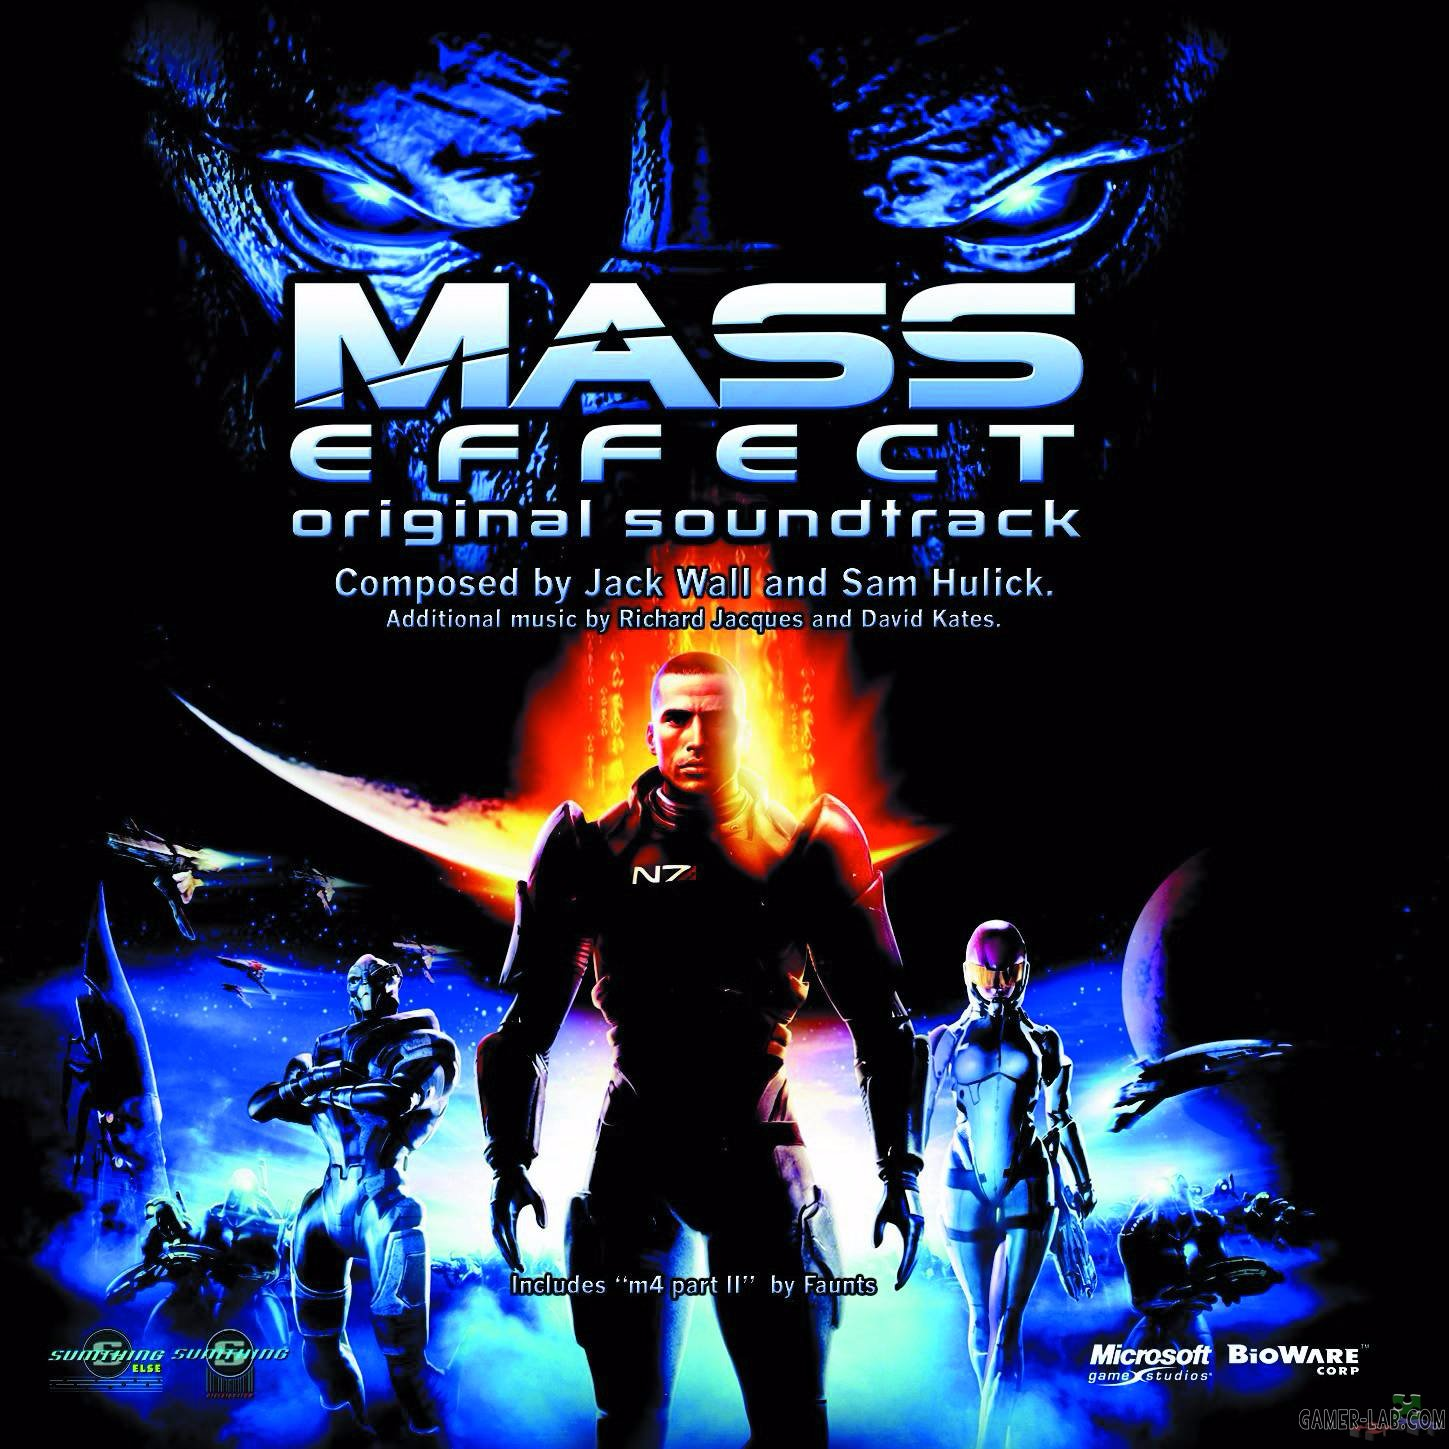 Mass Effect Original Soundtrack (2007)